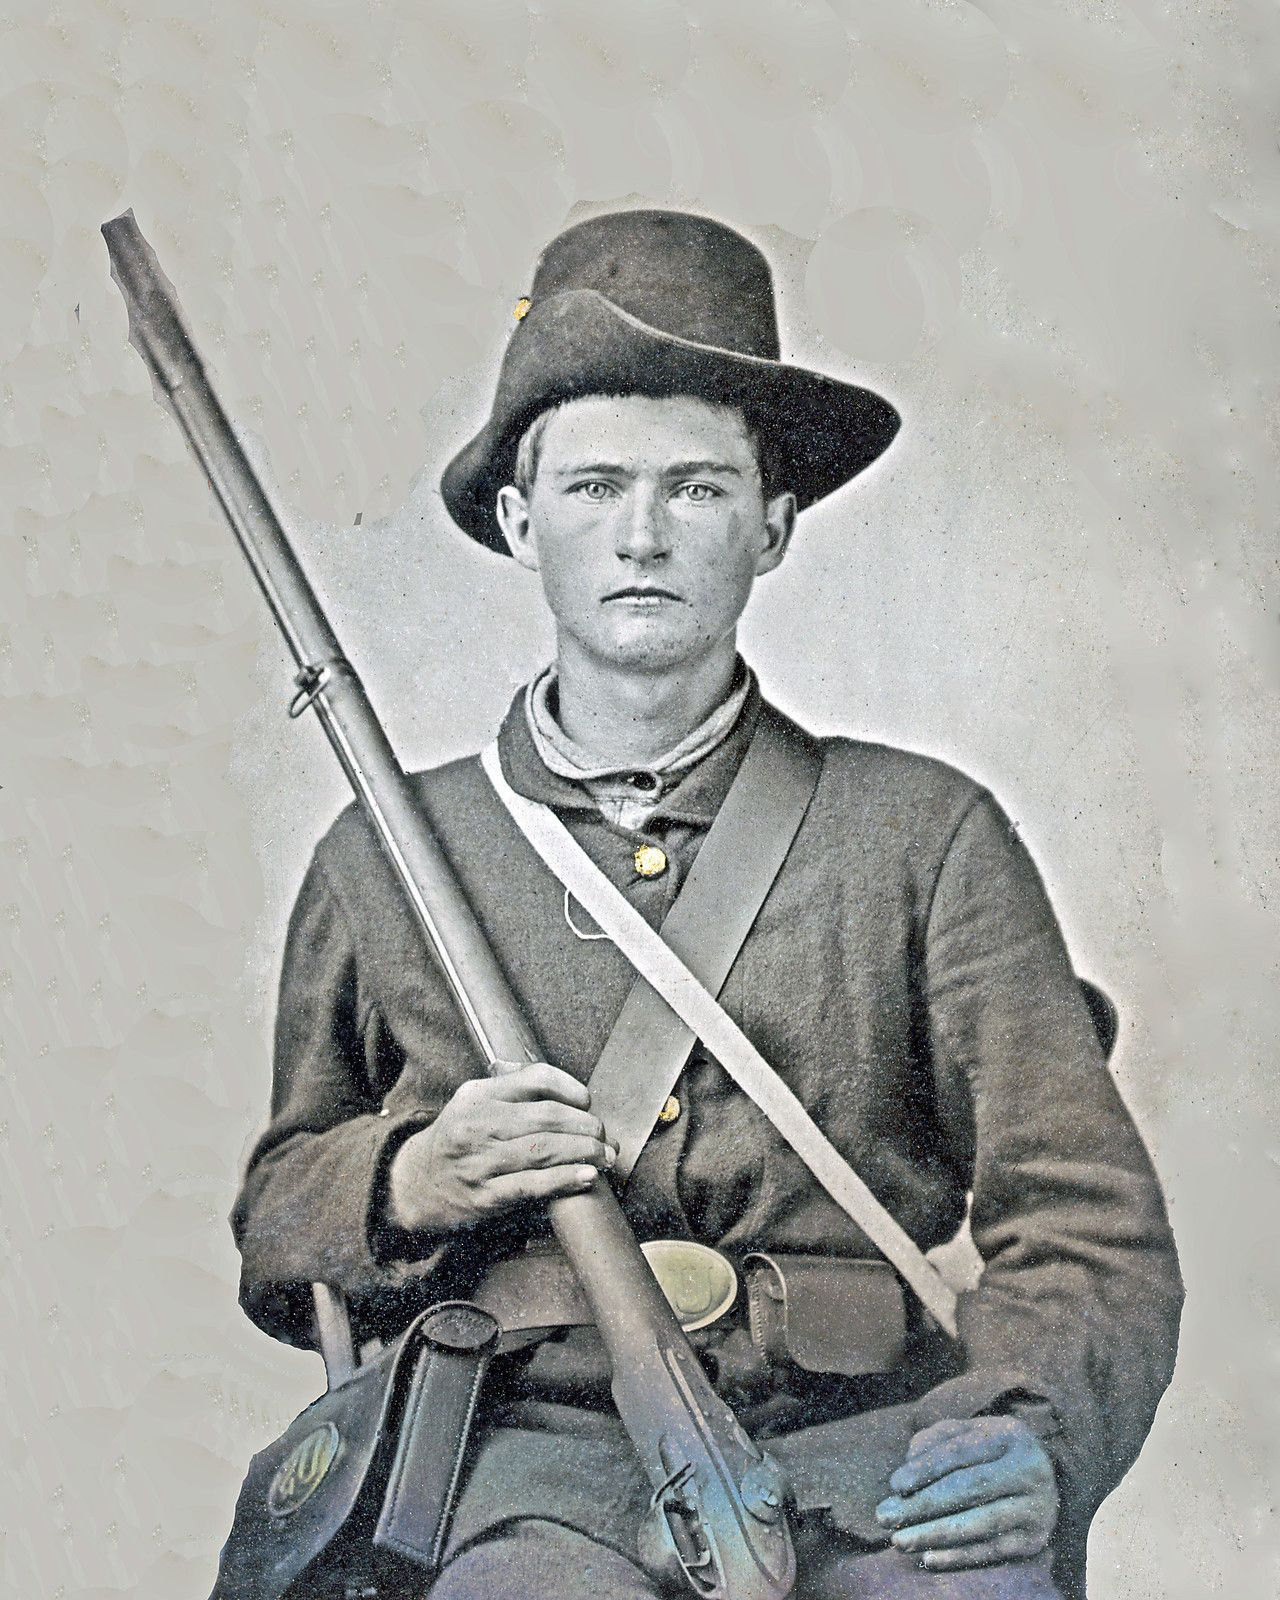 Image result for ambrotype soldier with 1842 musket""